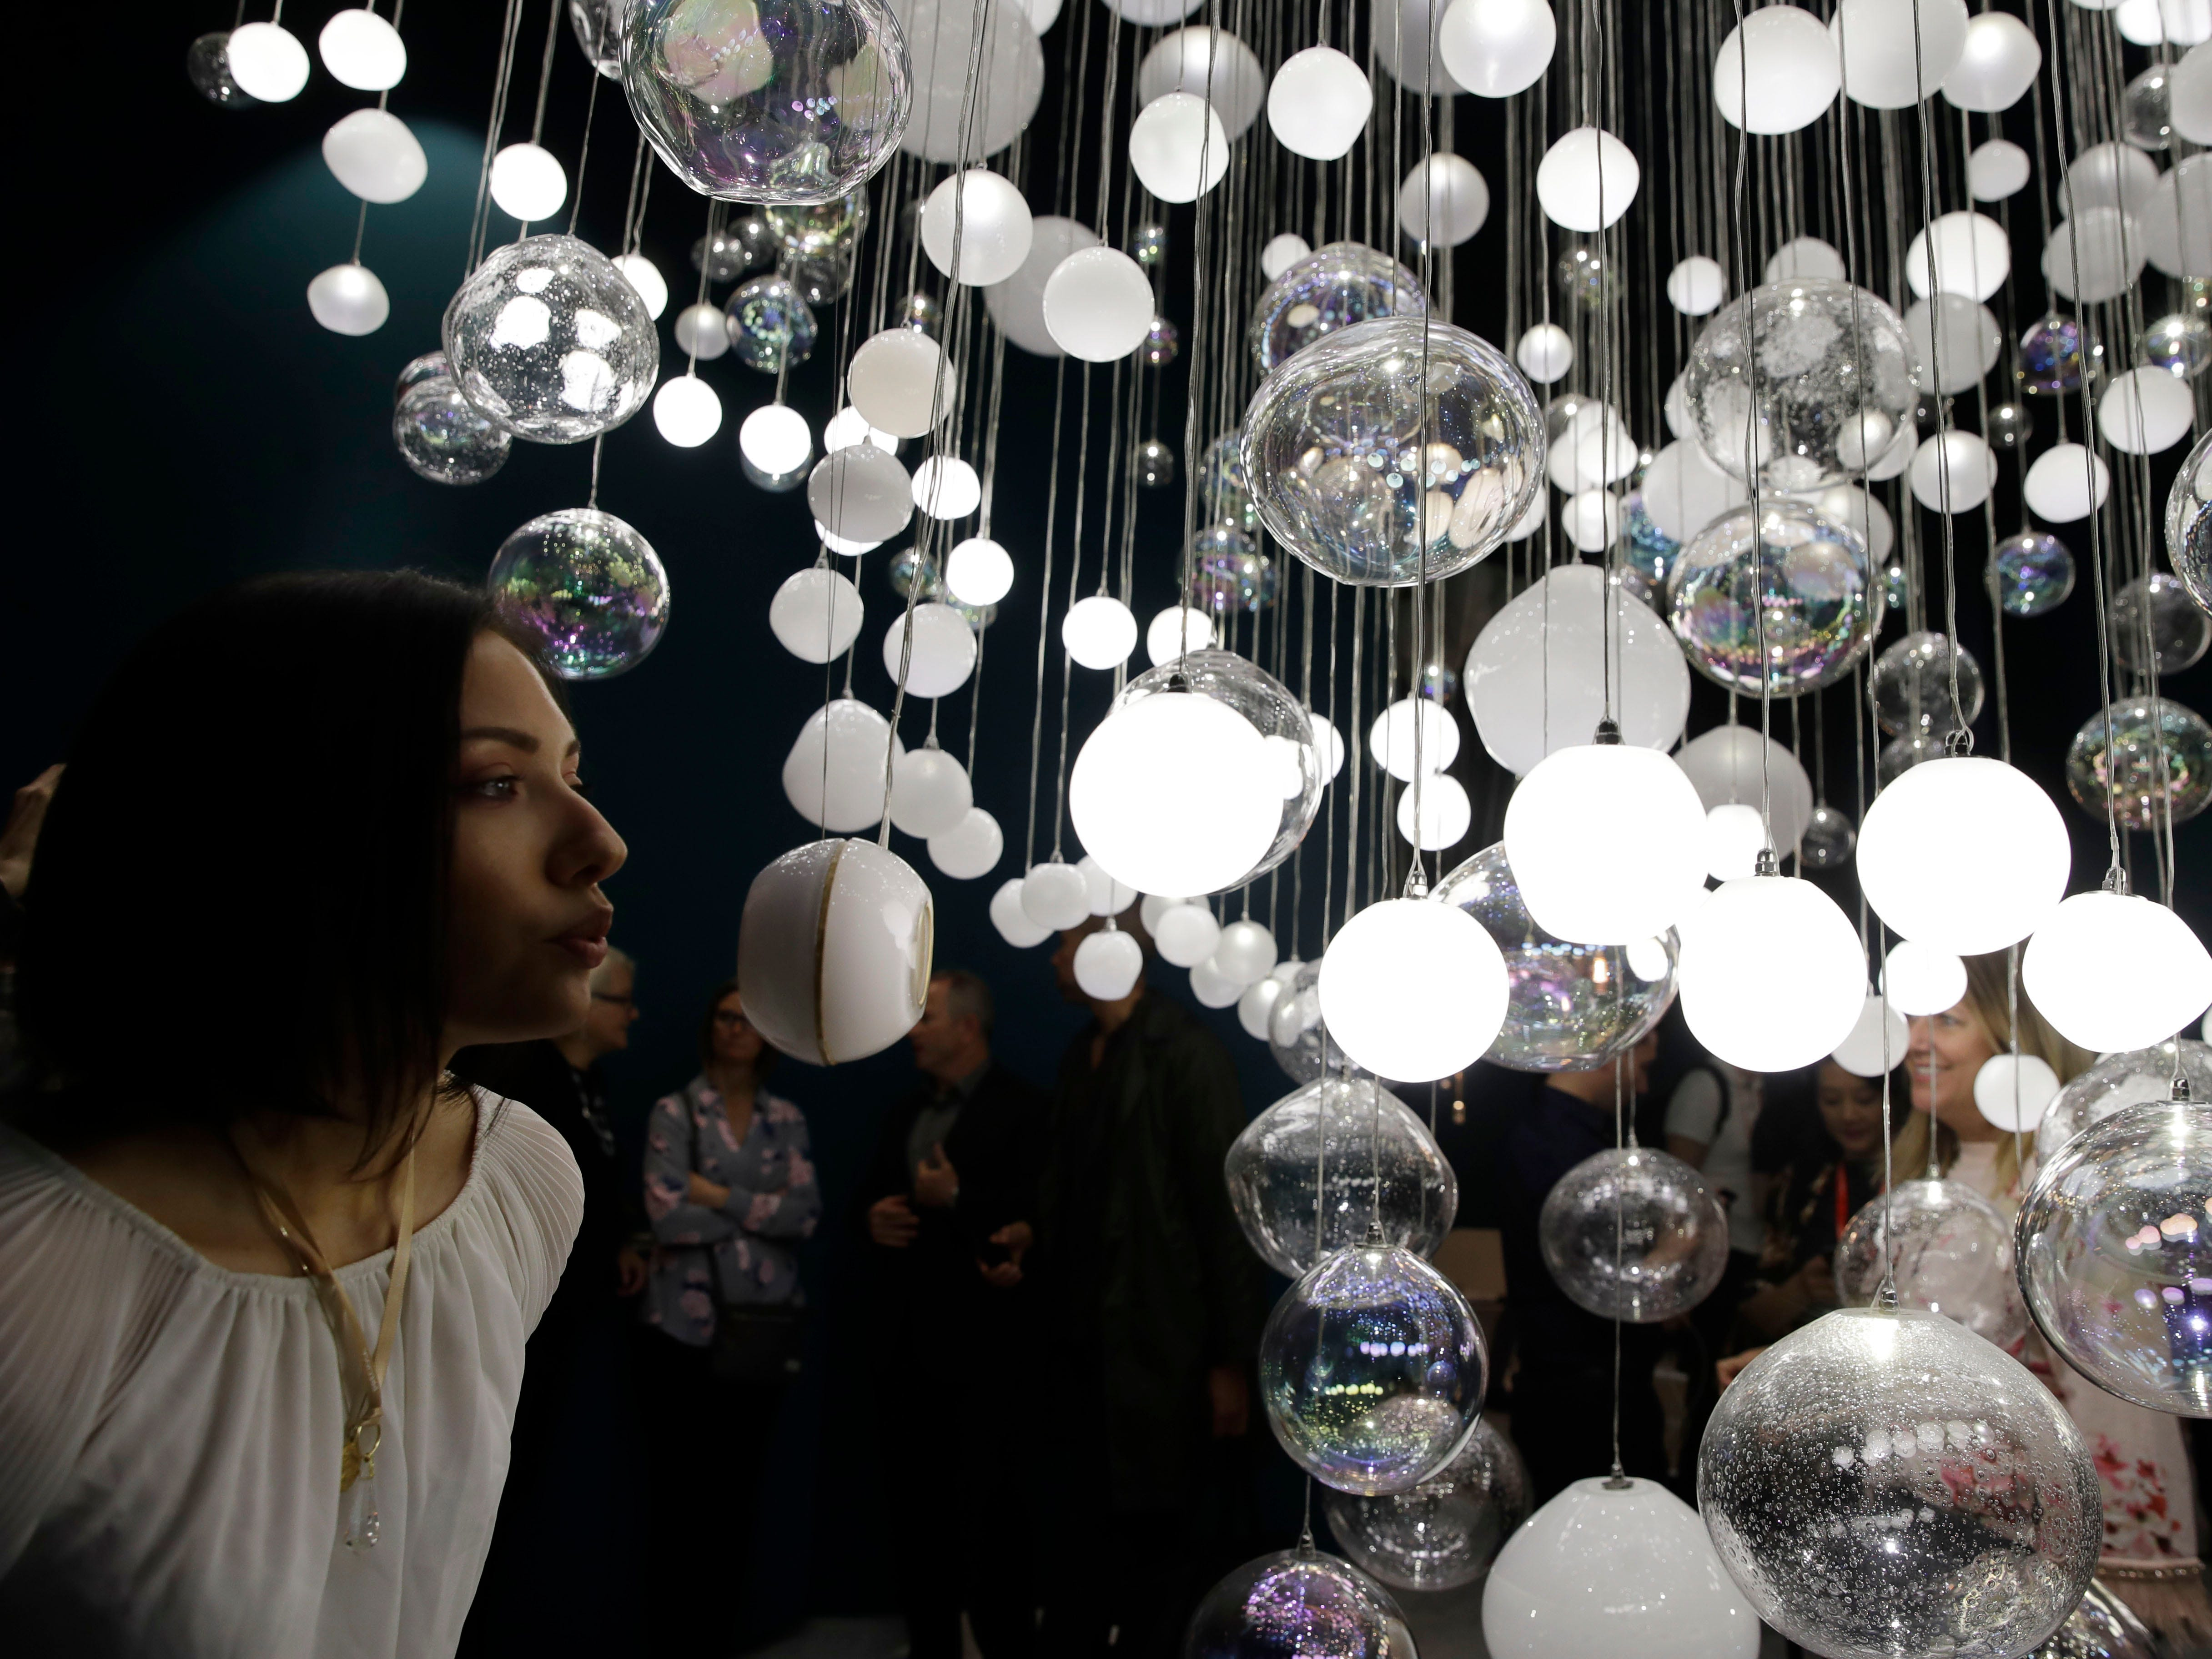 An assistant blows into a crystal bubble of the 'Breath of Light' to turn on light bulbs, creation for Preciosa by creative director Michael Vasku, displayed at the Salone del Mobile Furniture Fair, in Rho, near Milan, Italy, Tuesday, April 9, 2019. The Salone del Mobile fair takes place in various locations across Milan from April 9 through 14, 2019.